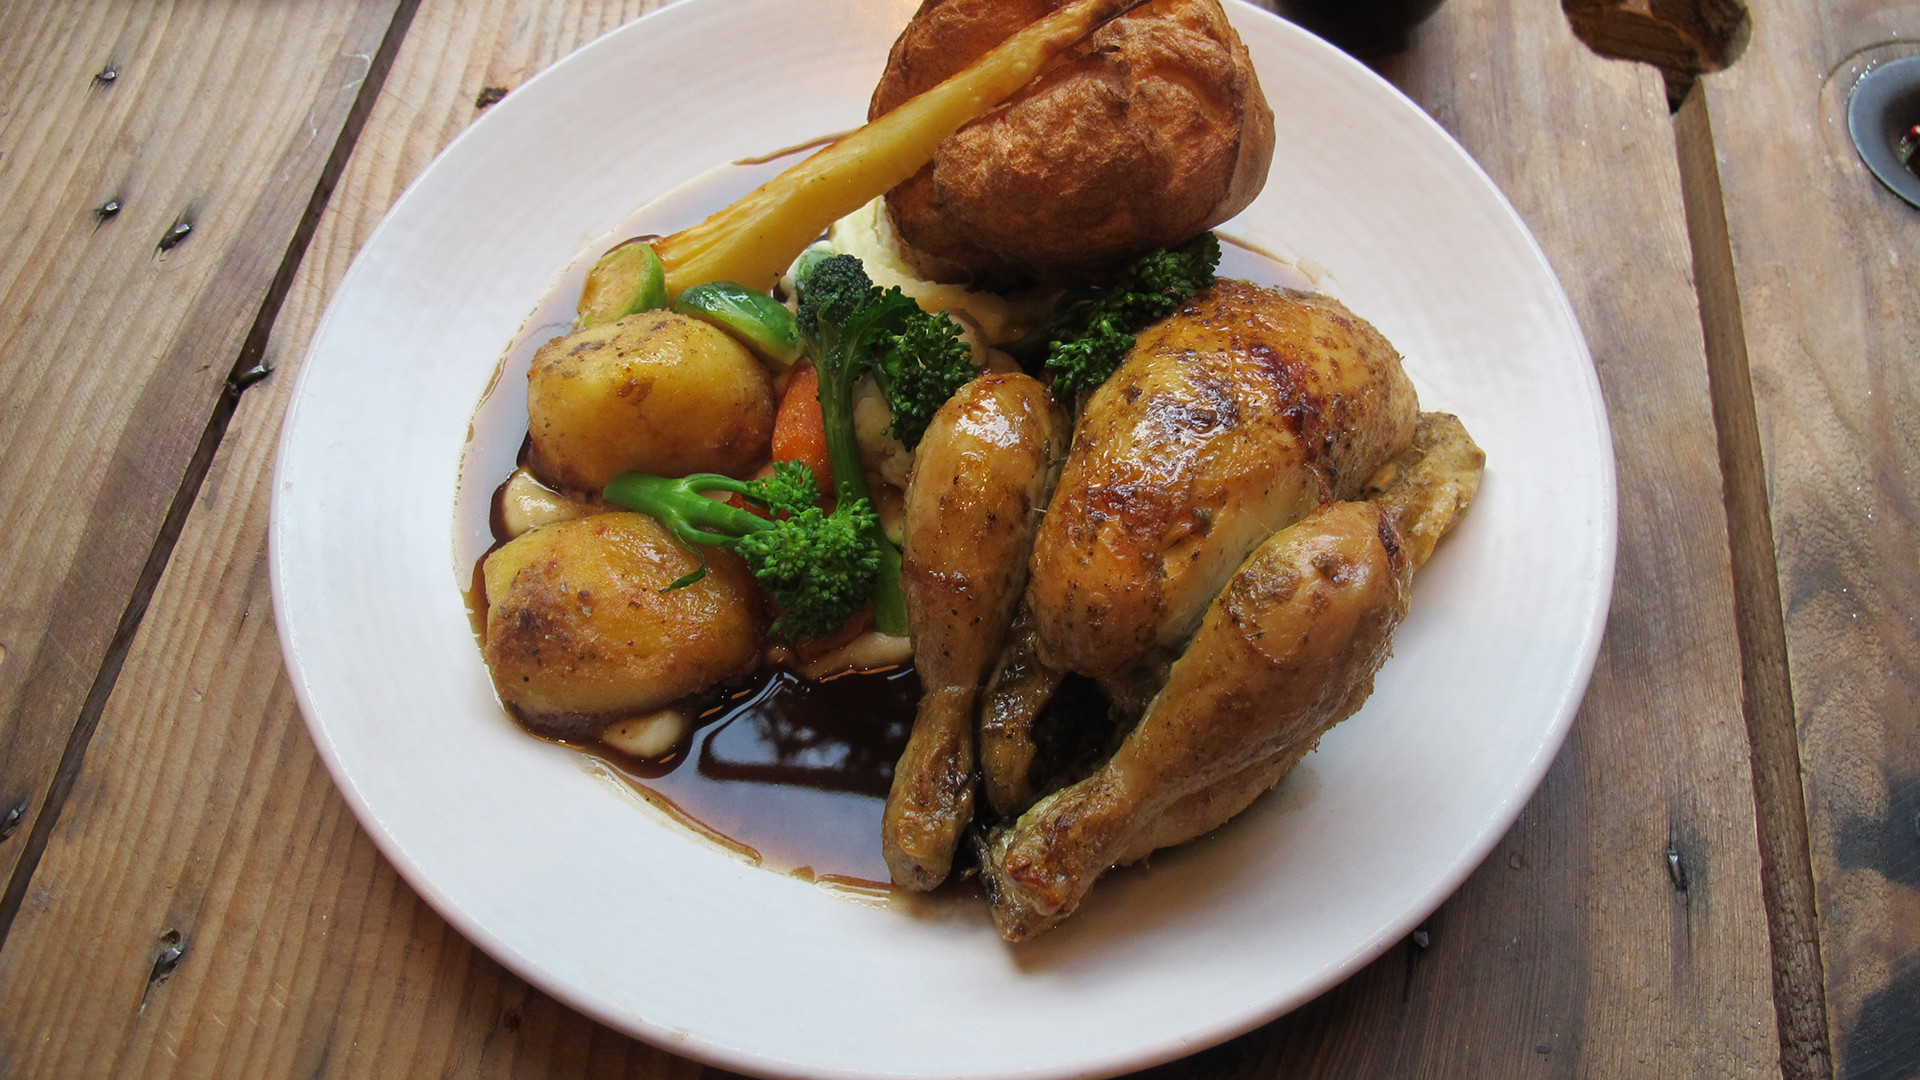 London's best Sunday roast – Jones Family Project